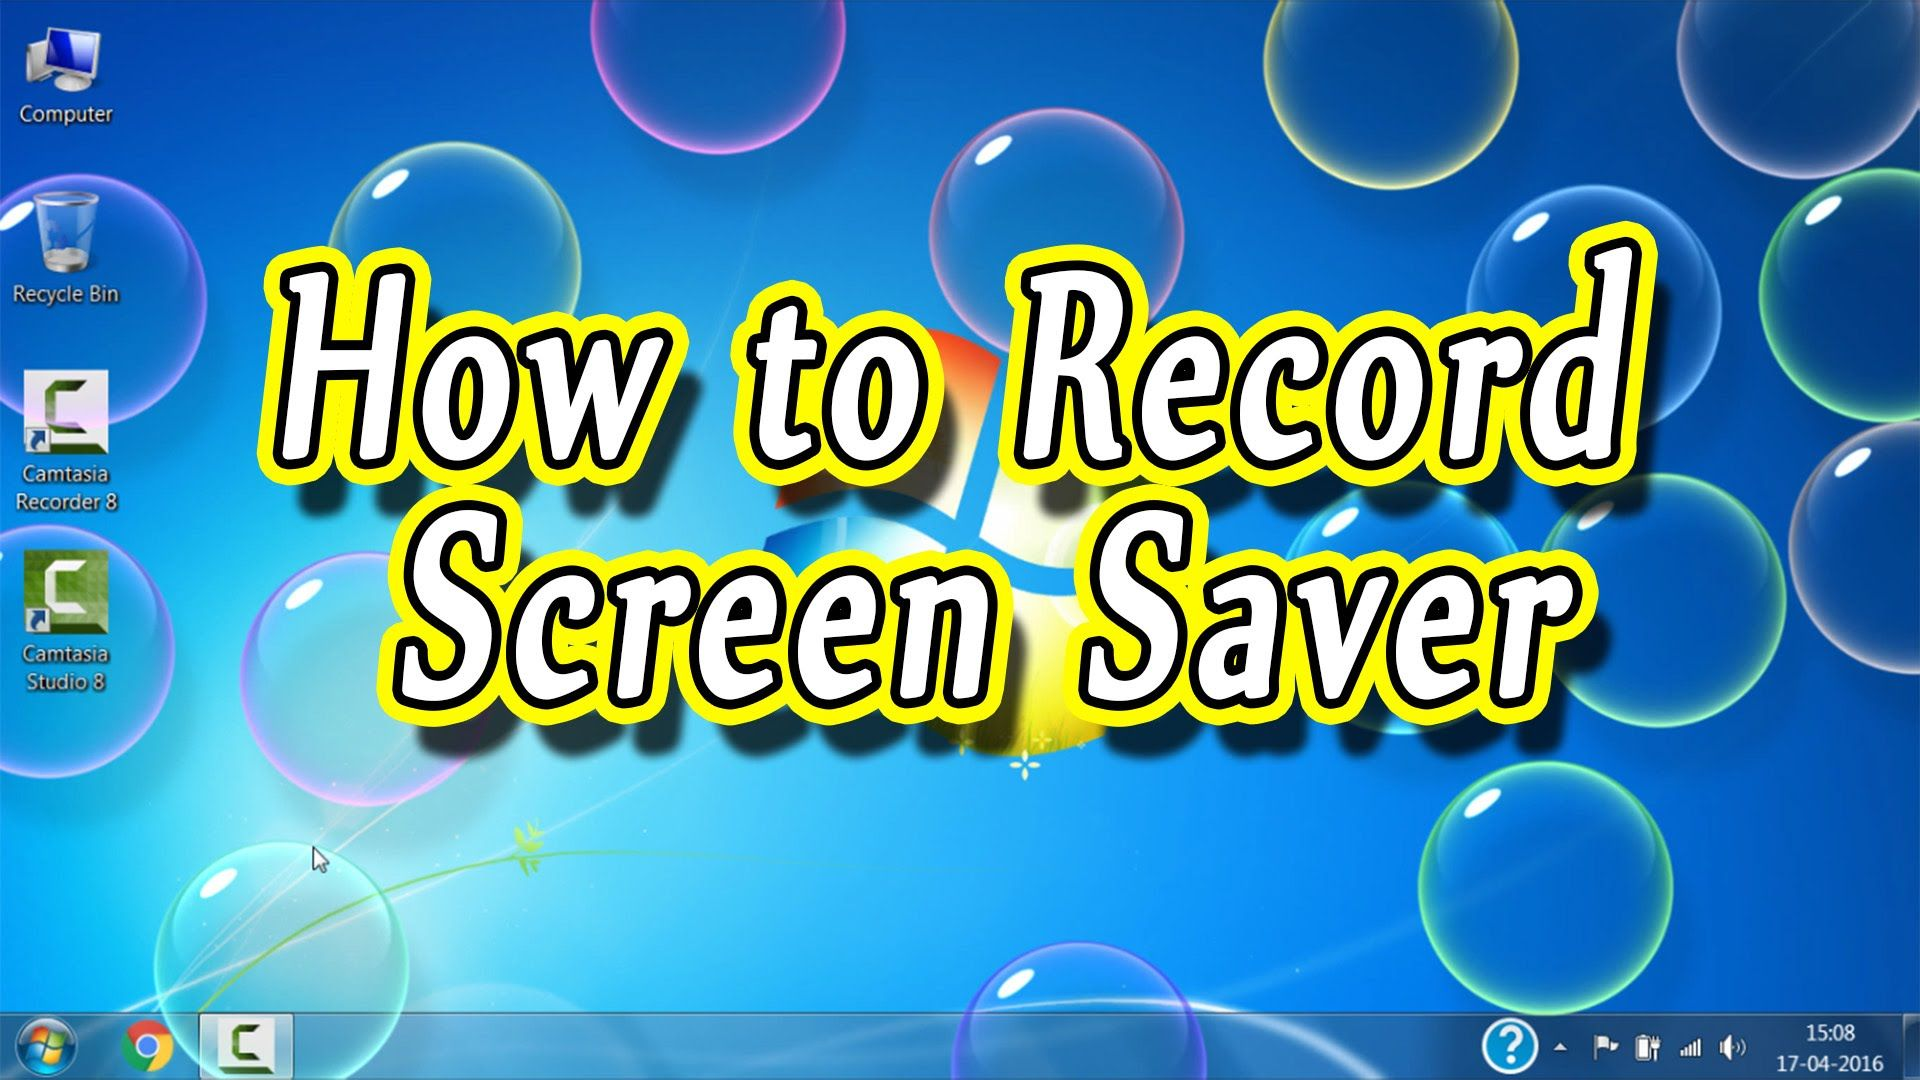 How To Record Screensaver In Windows Mac New 2016 Screen Savers Records Savers